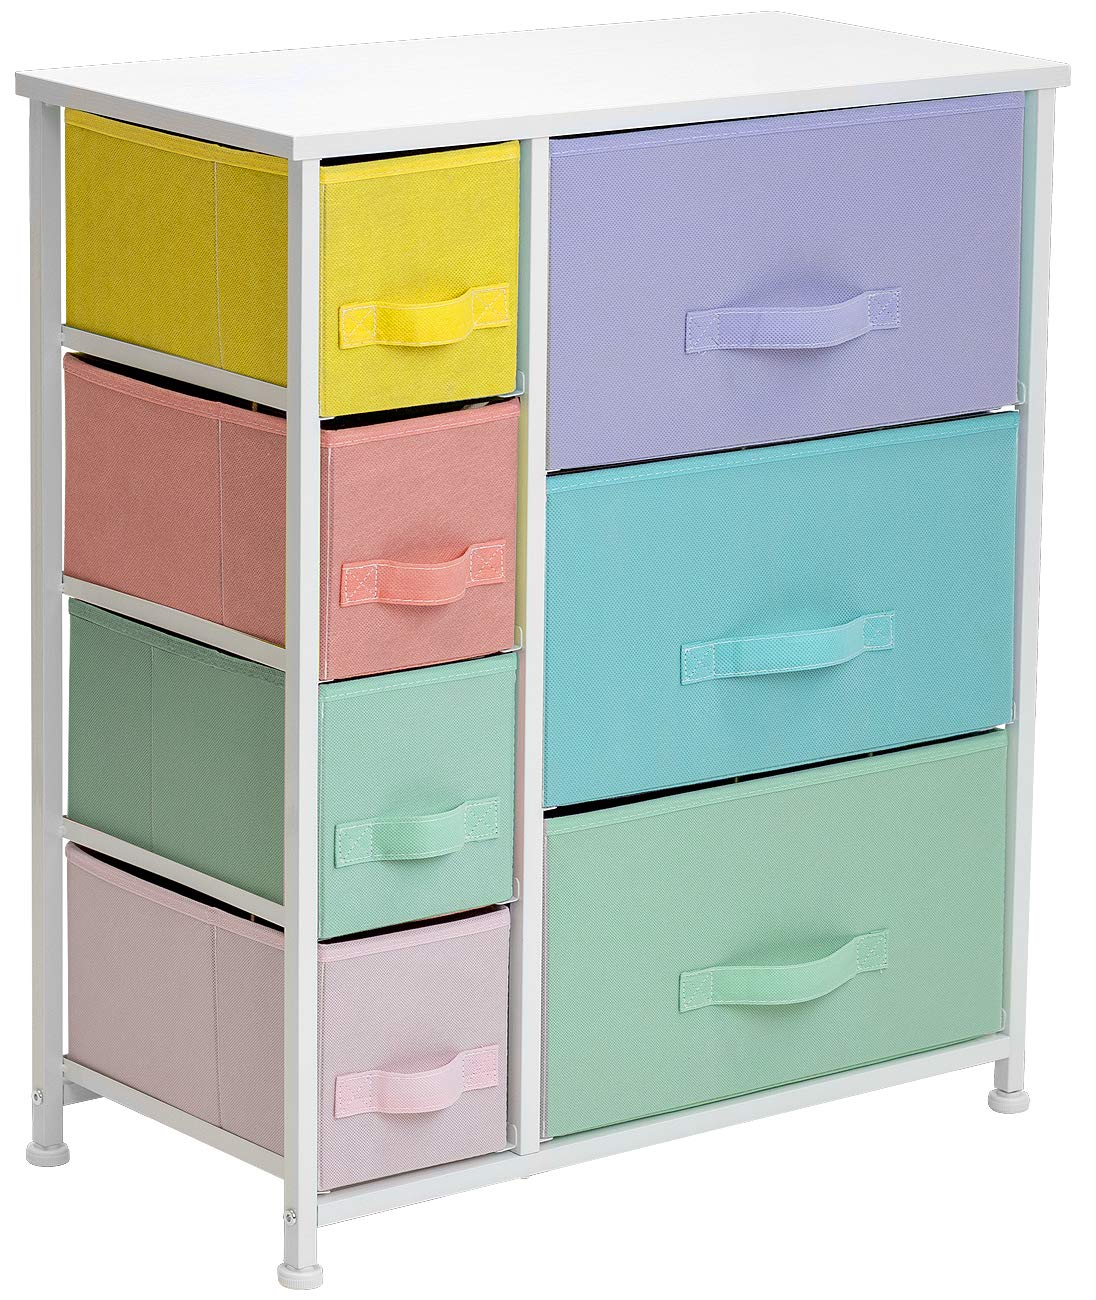 Fabric Bins Bedroom Steel Frame Sorbus Dresser with 7 Drawers Clothes Nursery Toys Furniture Storage Chest for Kid/'s Teens Wood Top Playroom Pastel//White, 7-Drawer